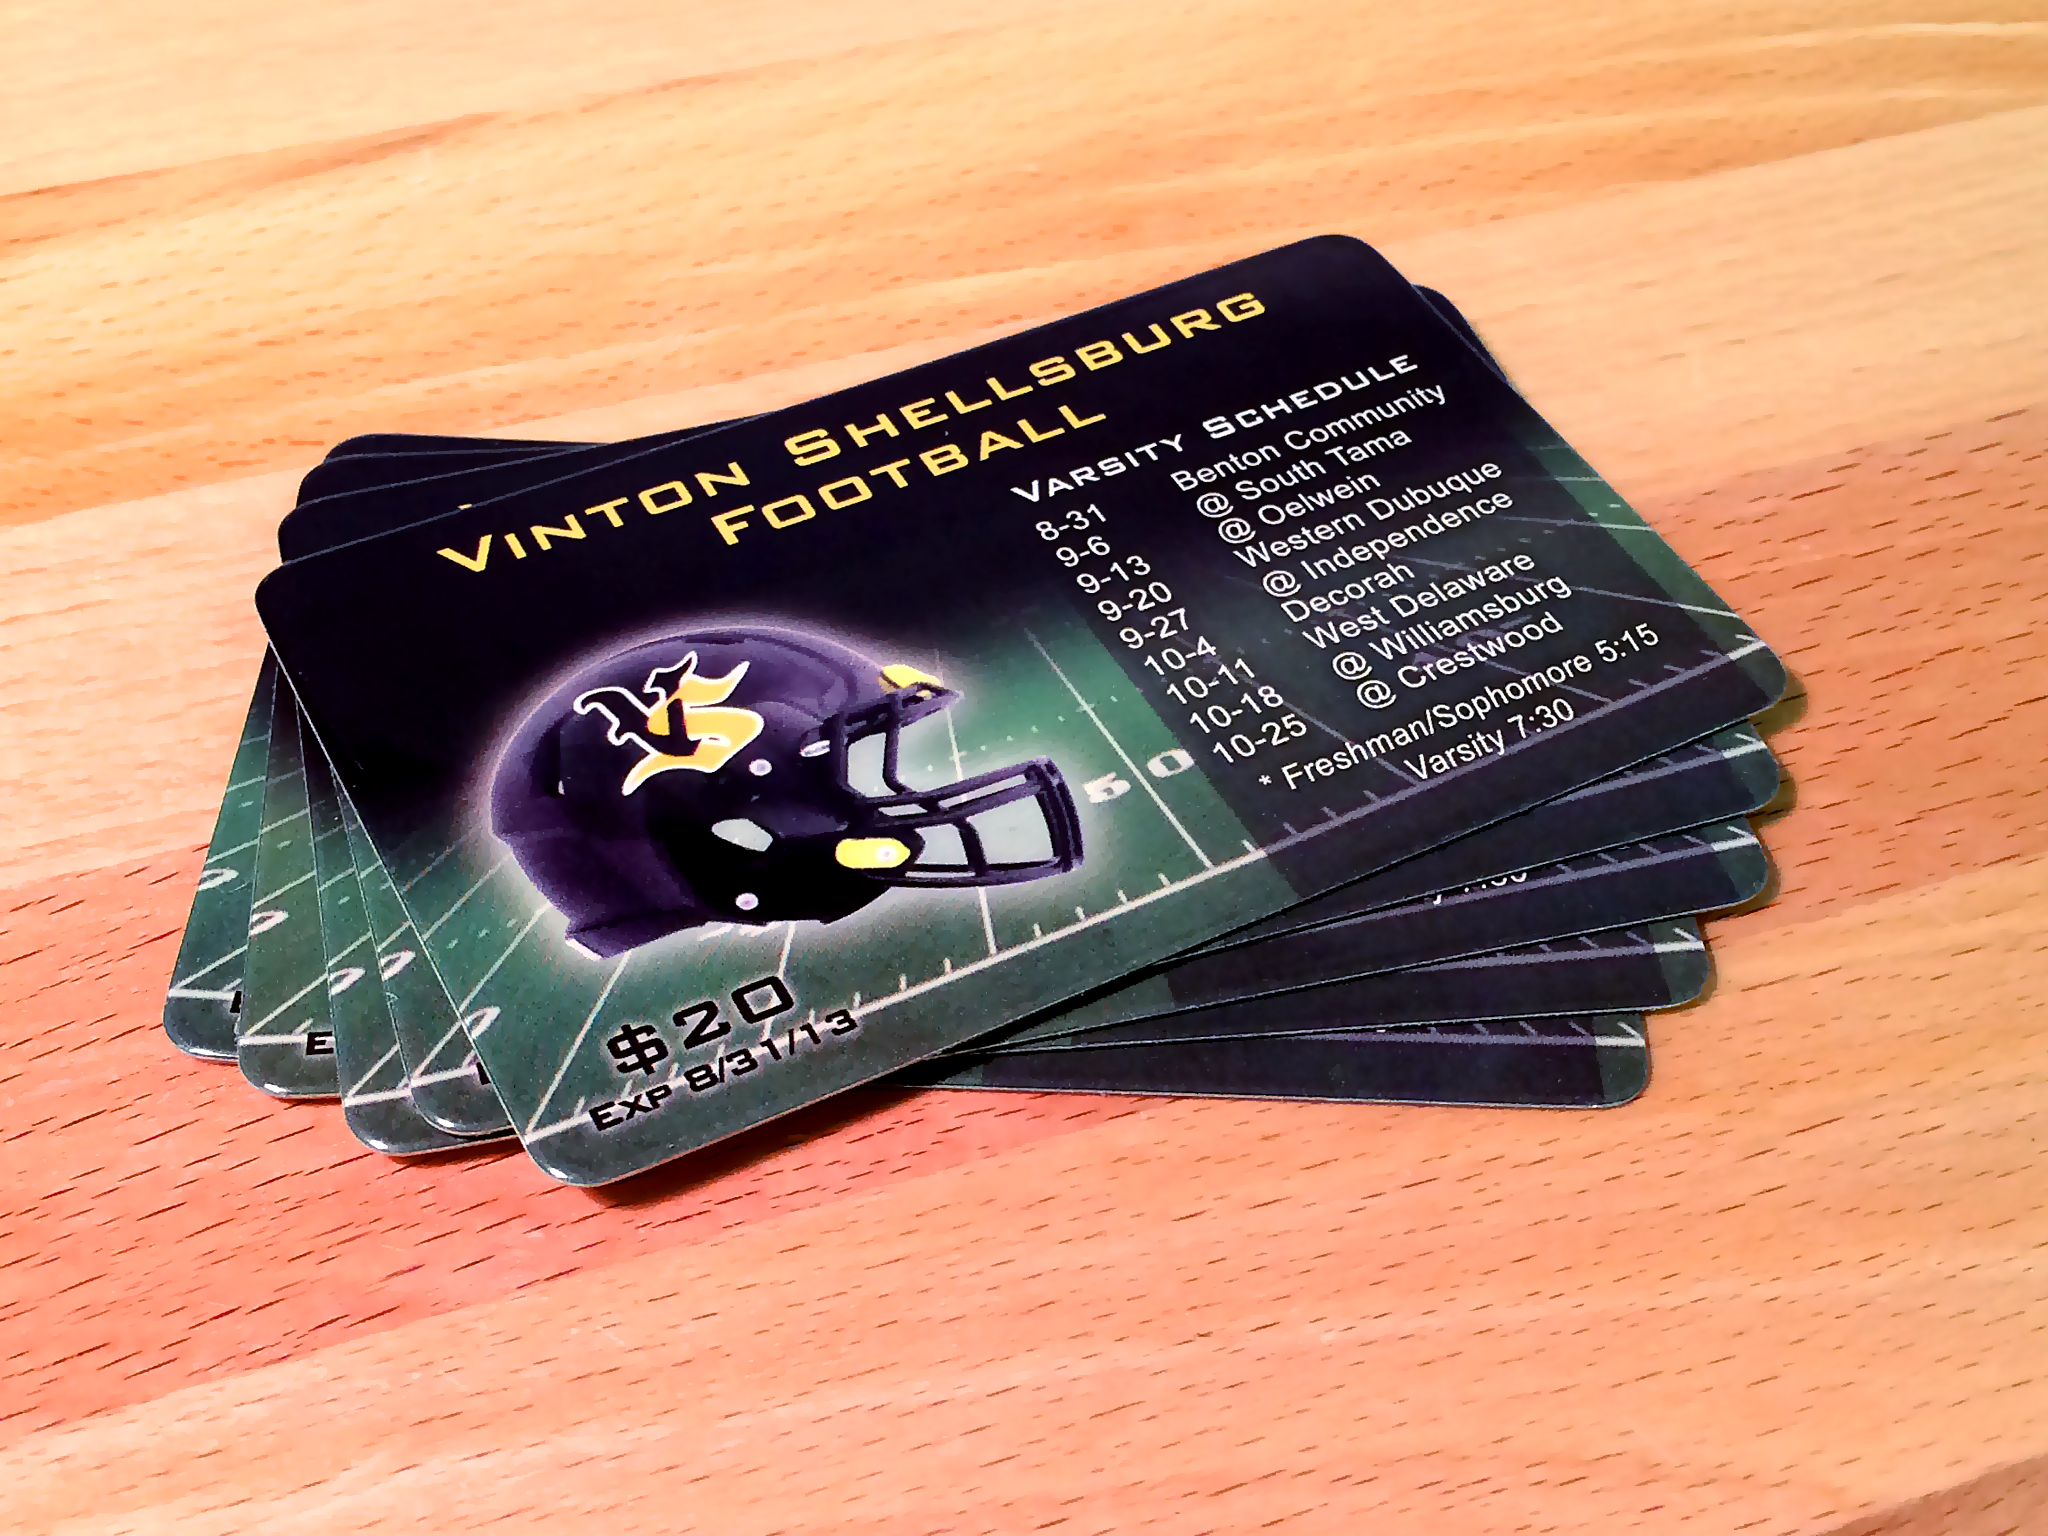 Fundraising cards duracard plastic cards fundraising card gallery reheart Choice Image